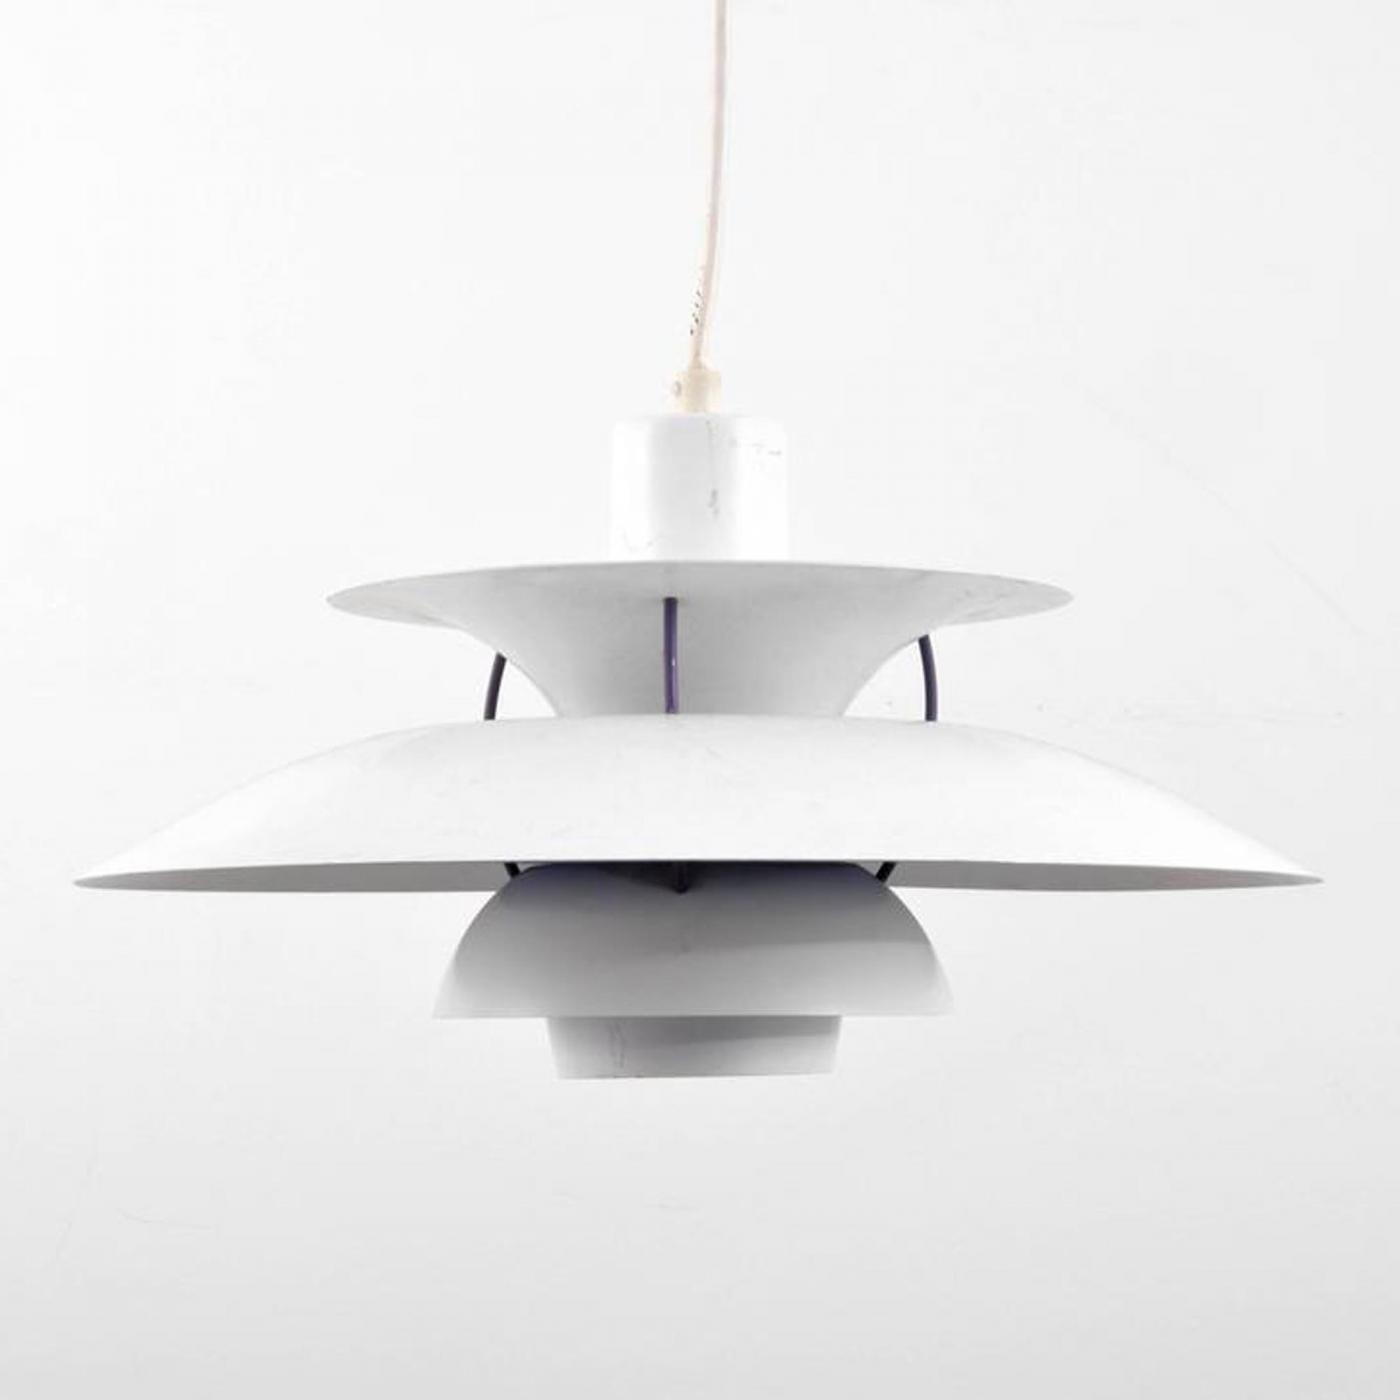 Poul henningsen poul henningsen ph5 pendant lamp 2 available listings furniture lighting chandeliers and pendants aloadofball Image collections